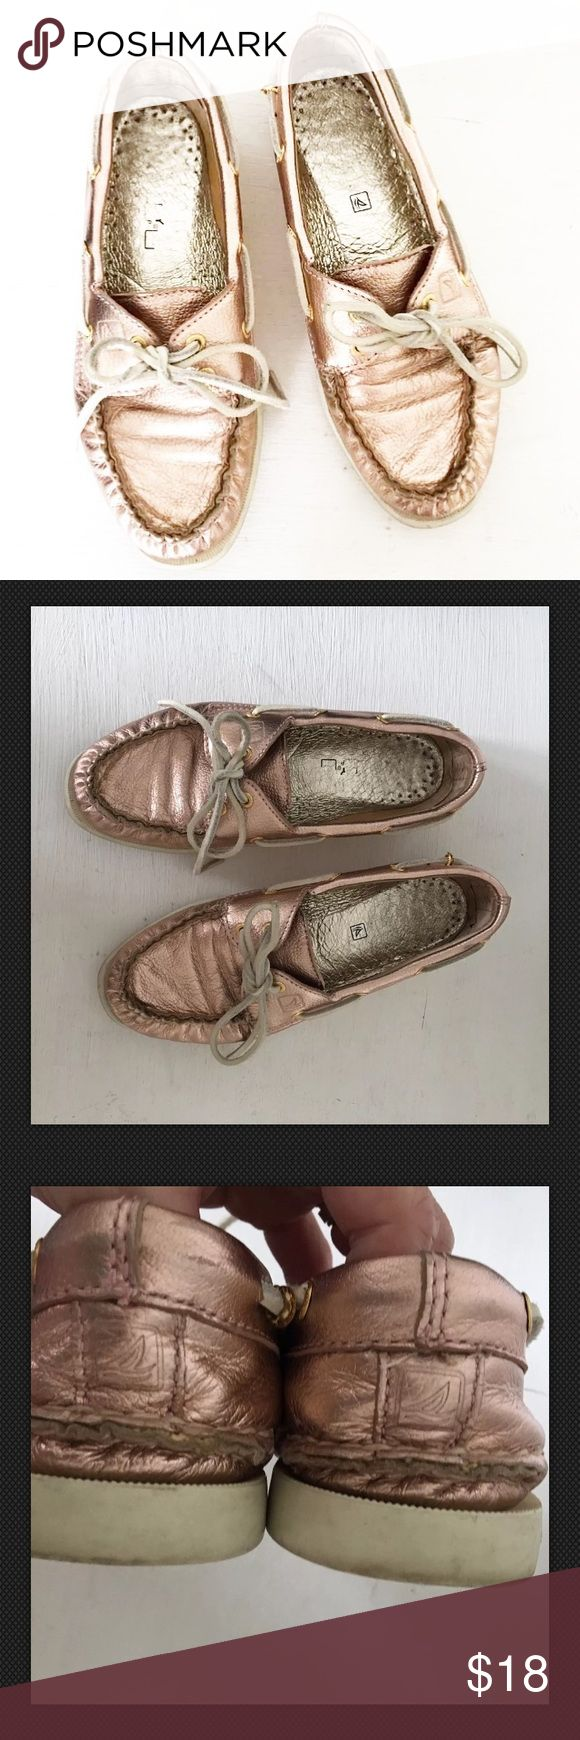 Sperry Topsider Rose Gold Leather Loafers Gently pre-loved with very minimal wear. Please see all pictures for an accurate description of condition. Leather. Size 5.5. *0819170263* Sperry Top-Sider Shoes Flats & Loafers